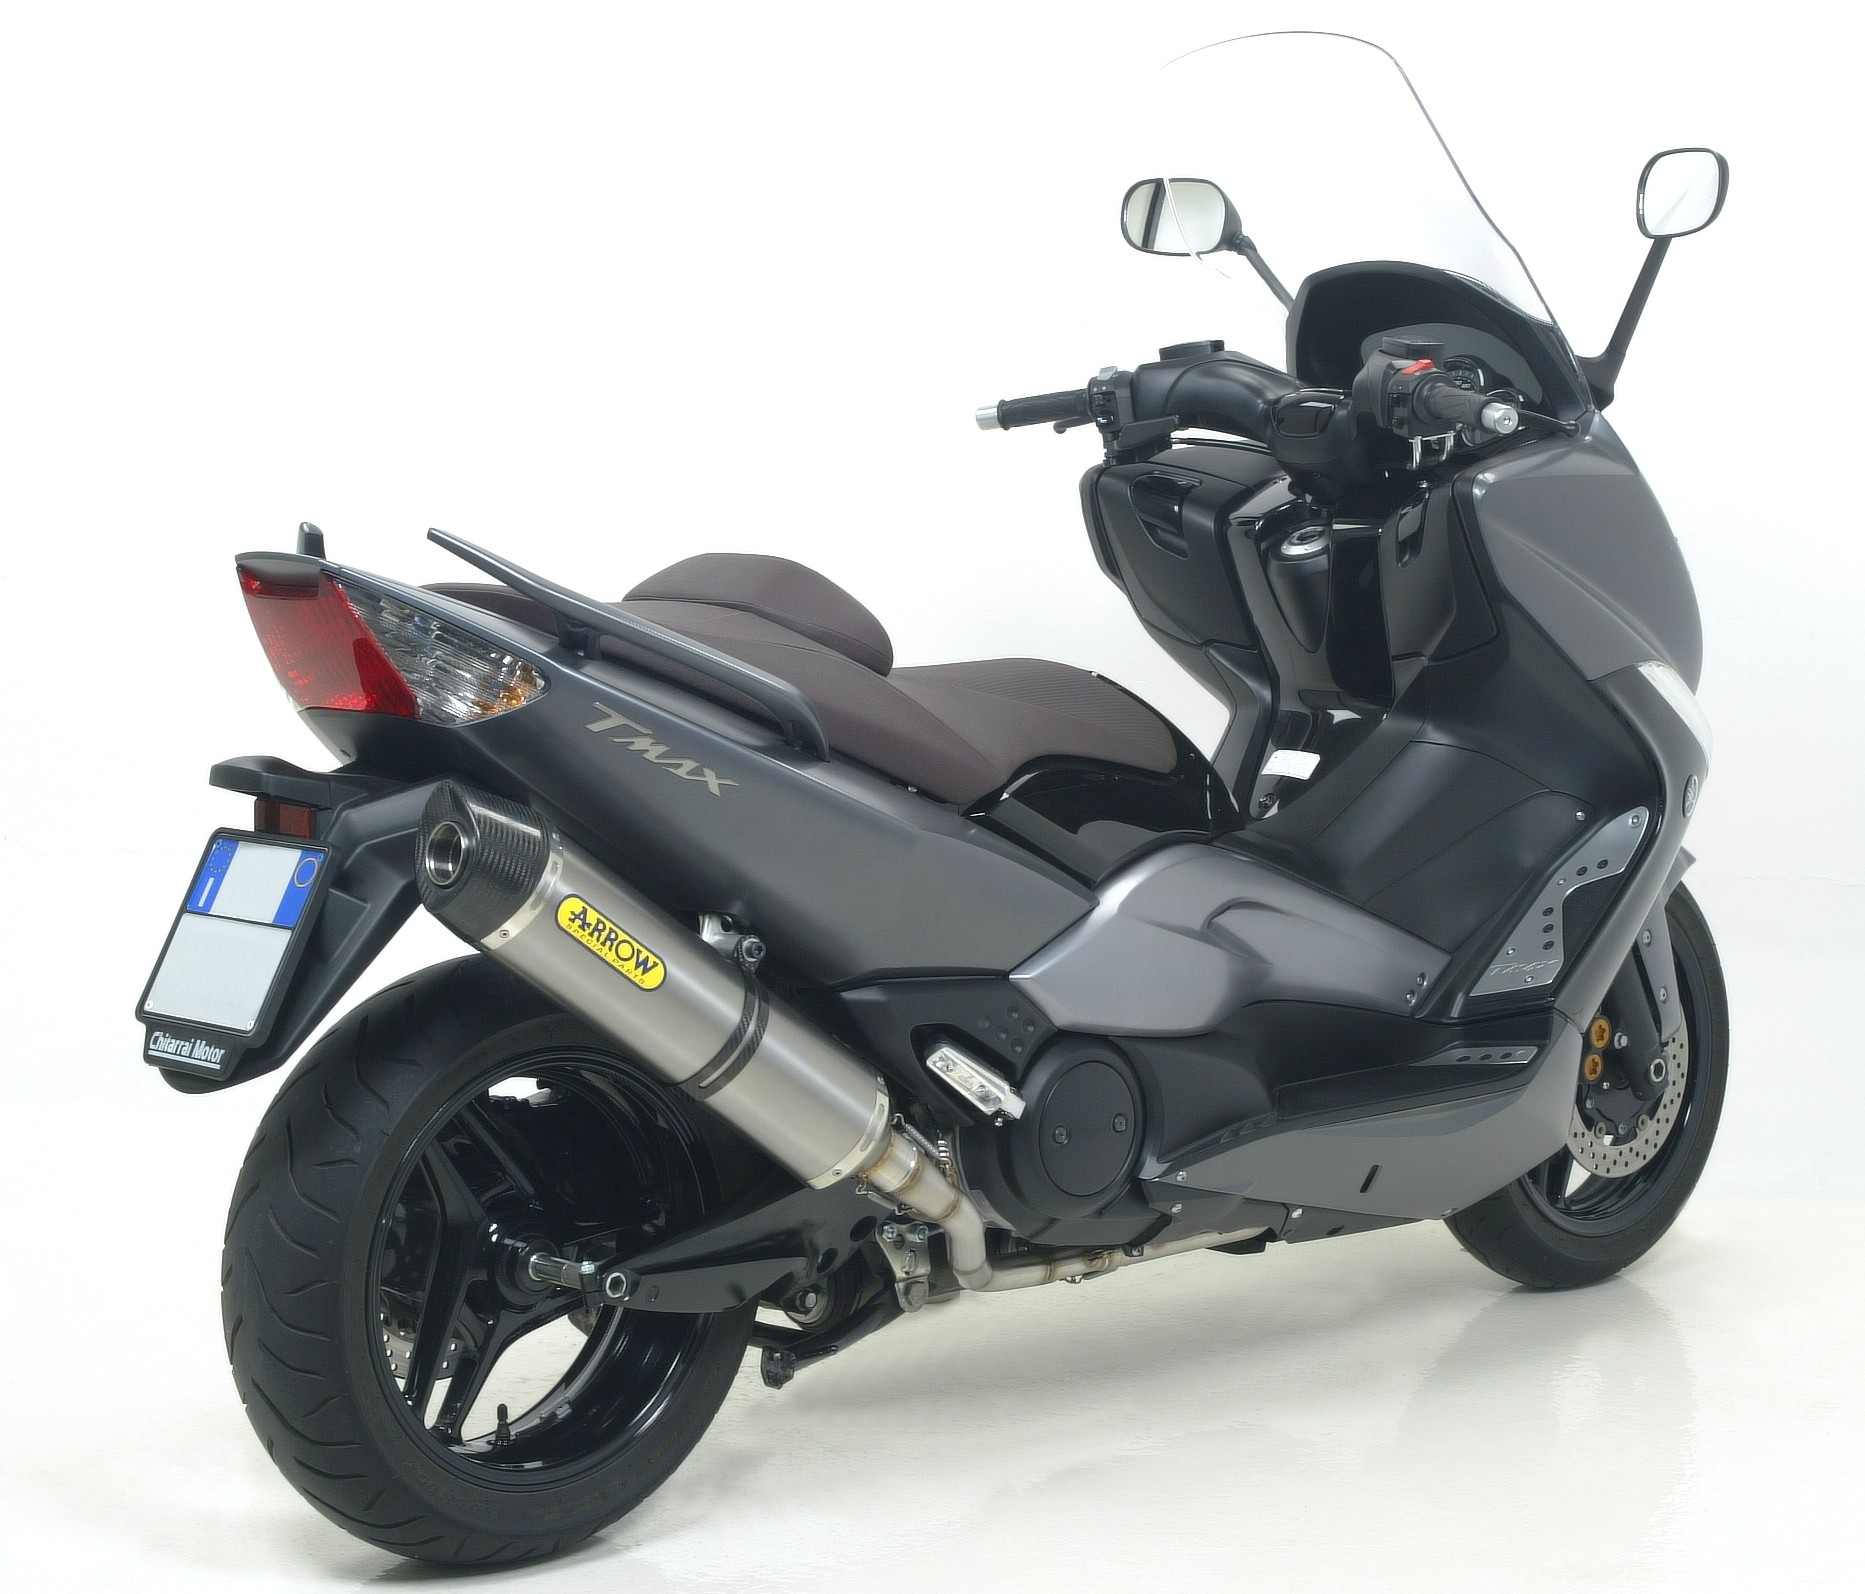 yamaha t max 500 photos and comments. Black Bedroom Furniture Sets. Home Design Ideas